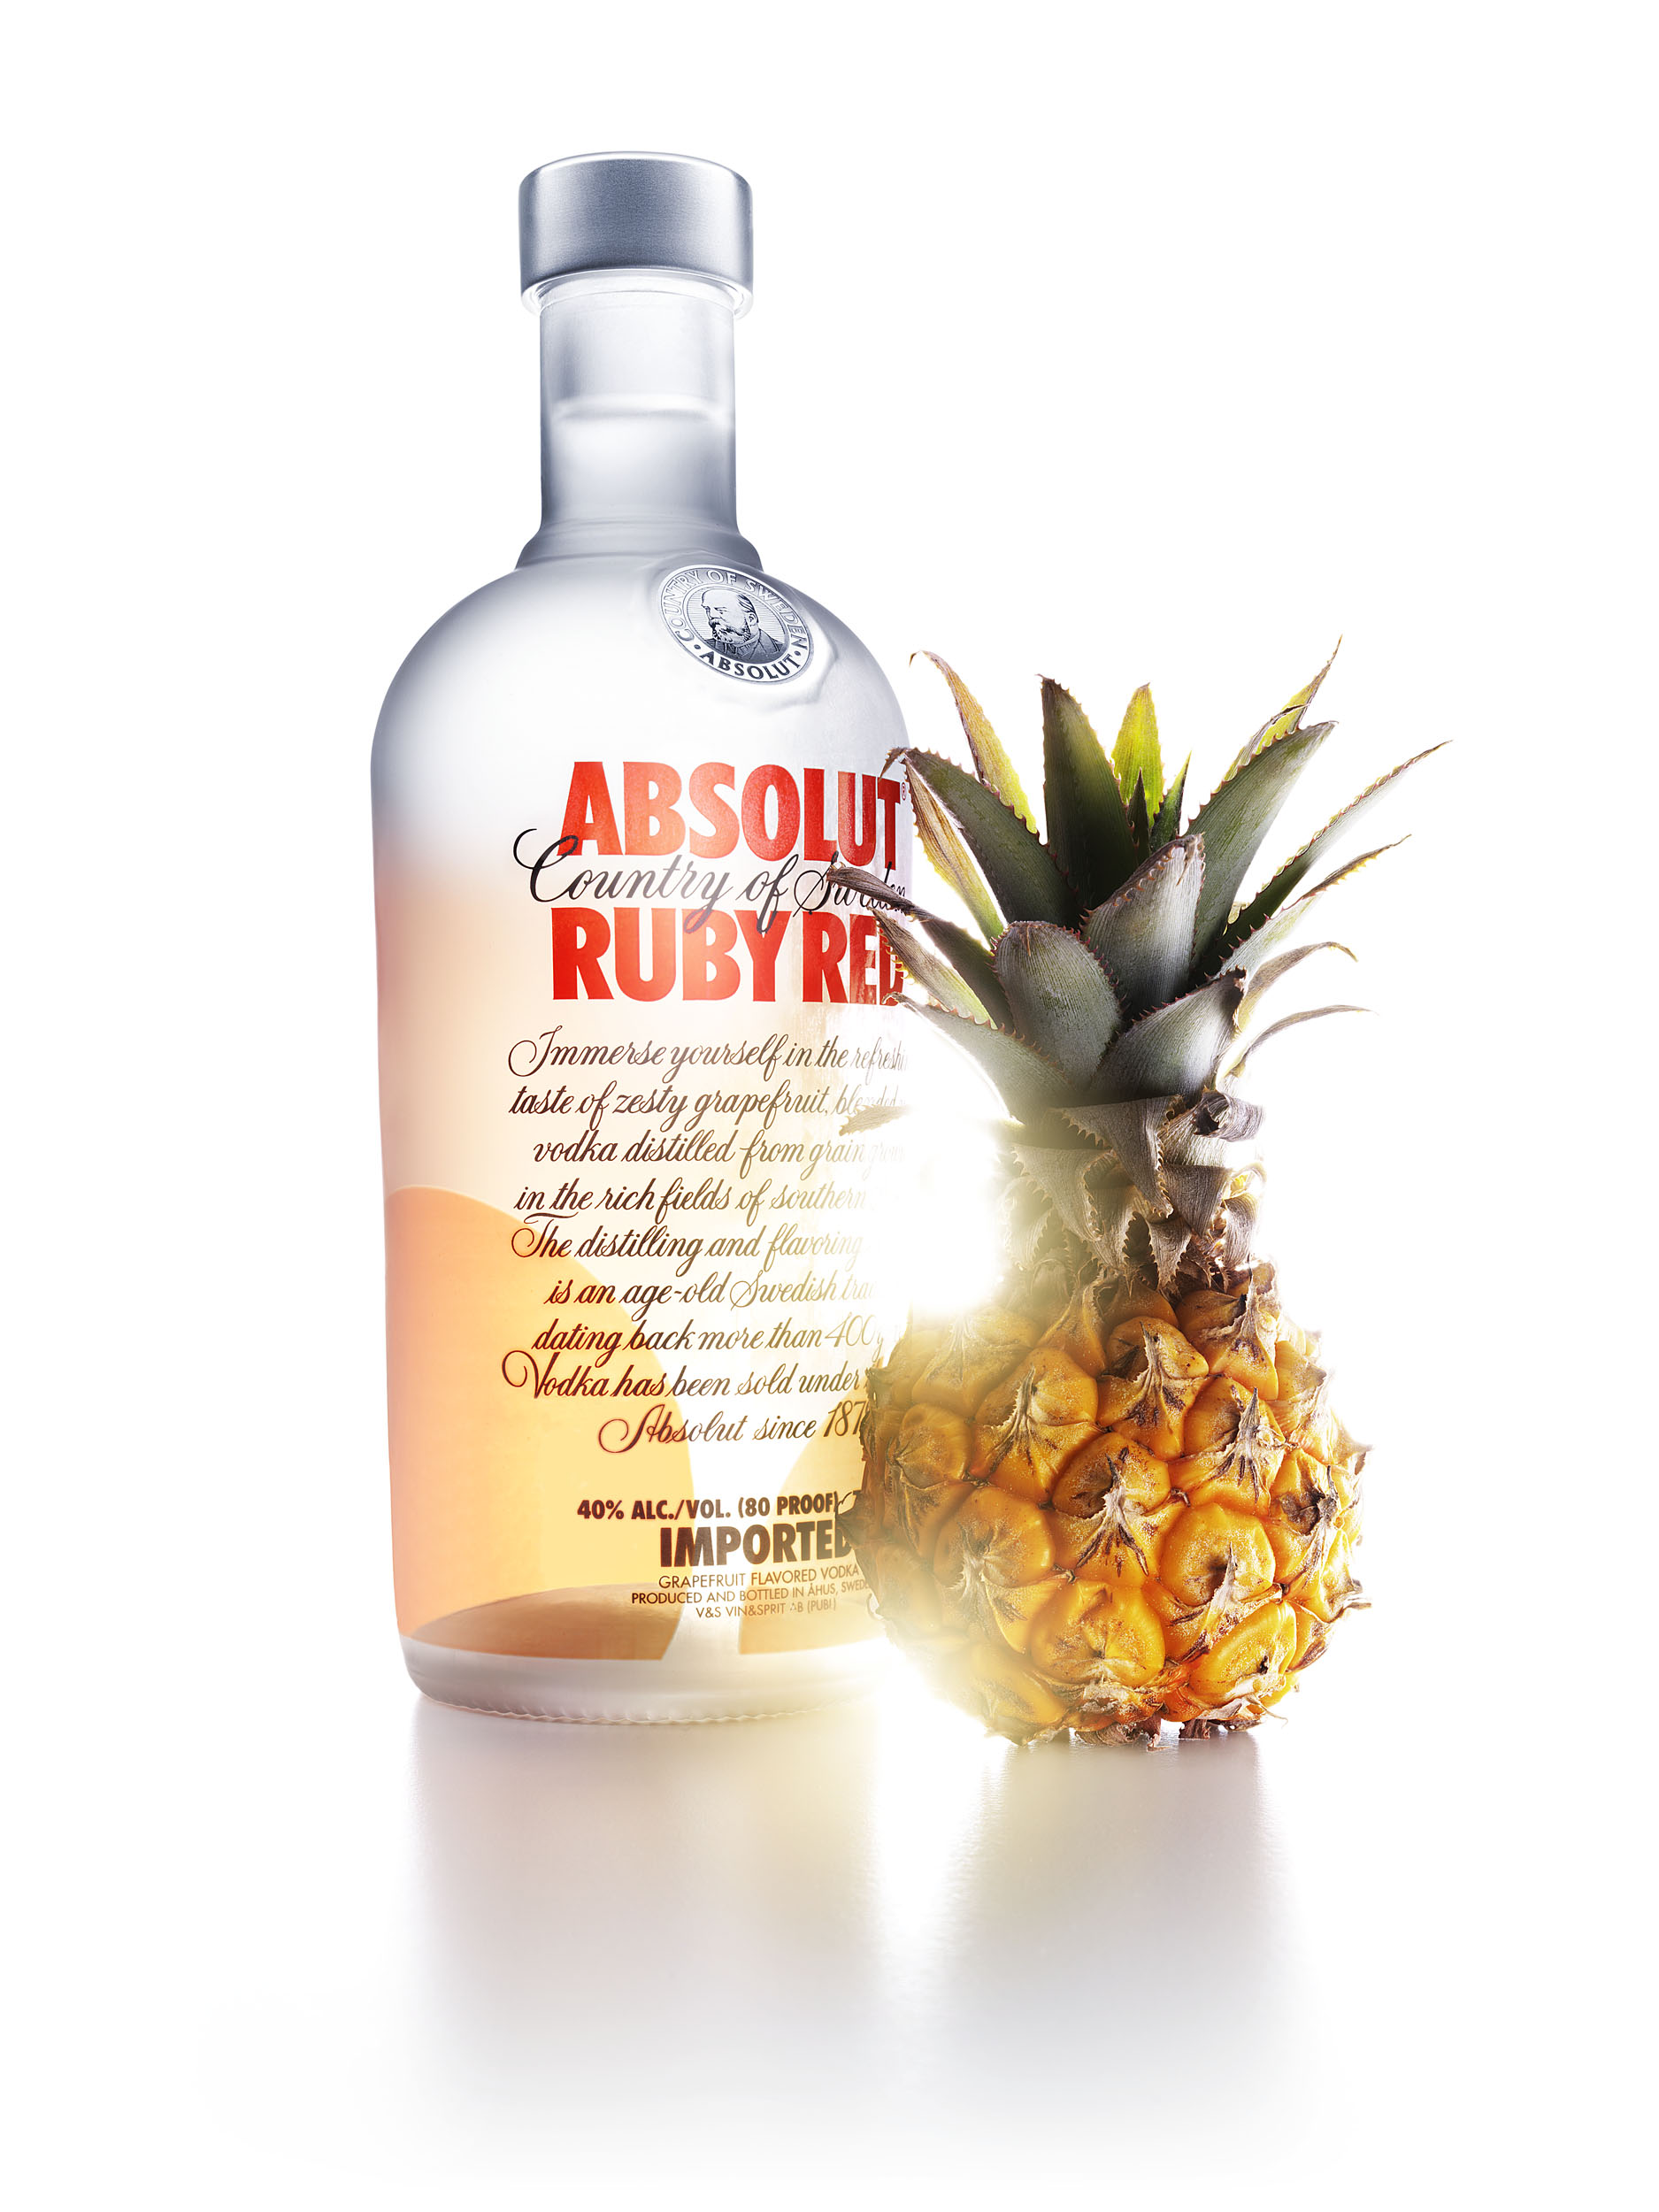 jensmortensen-absolut-vodka-ec103f58